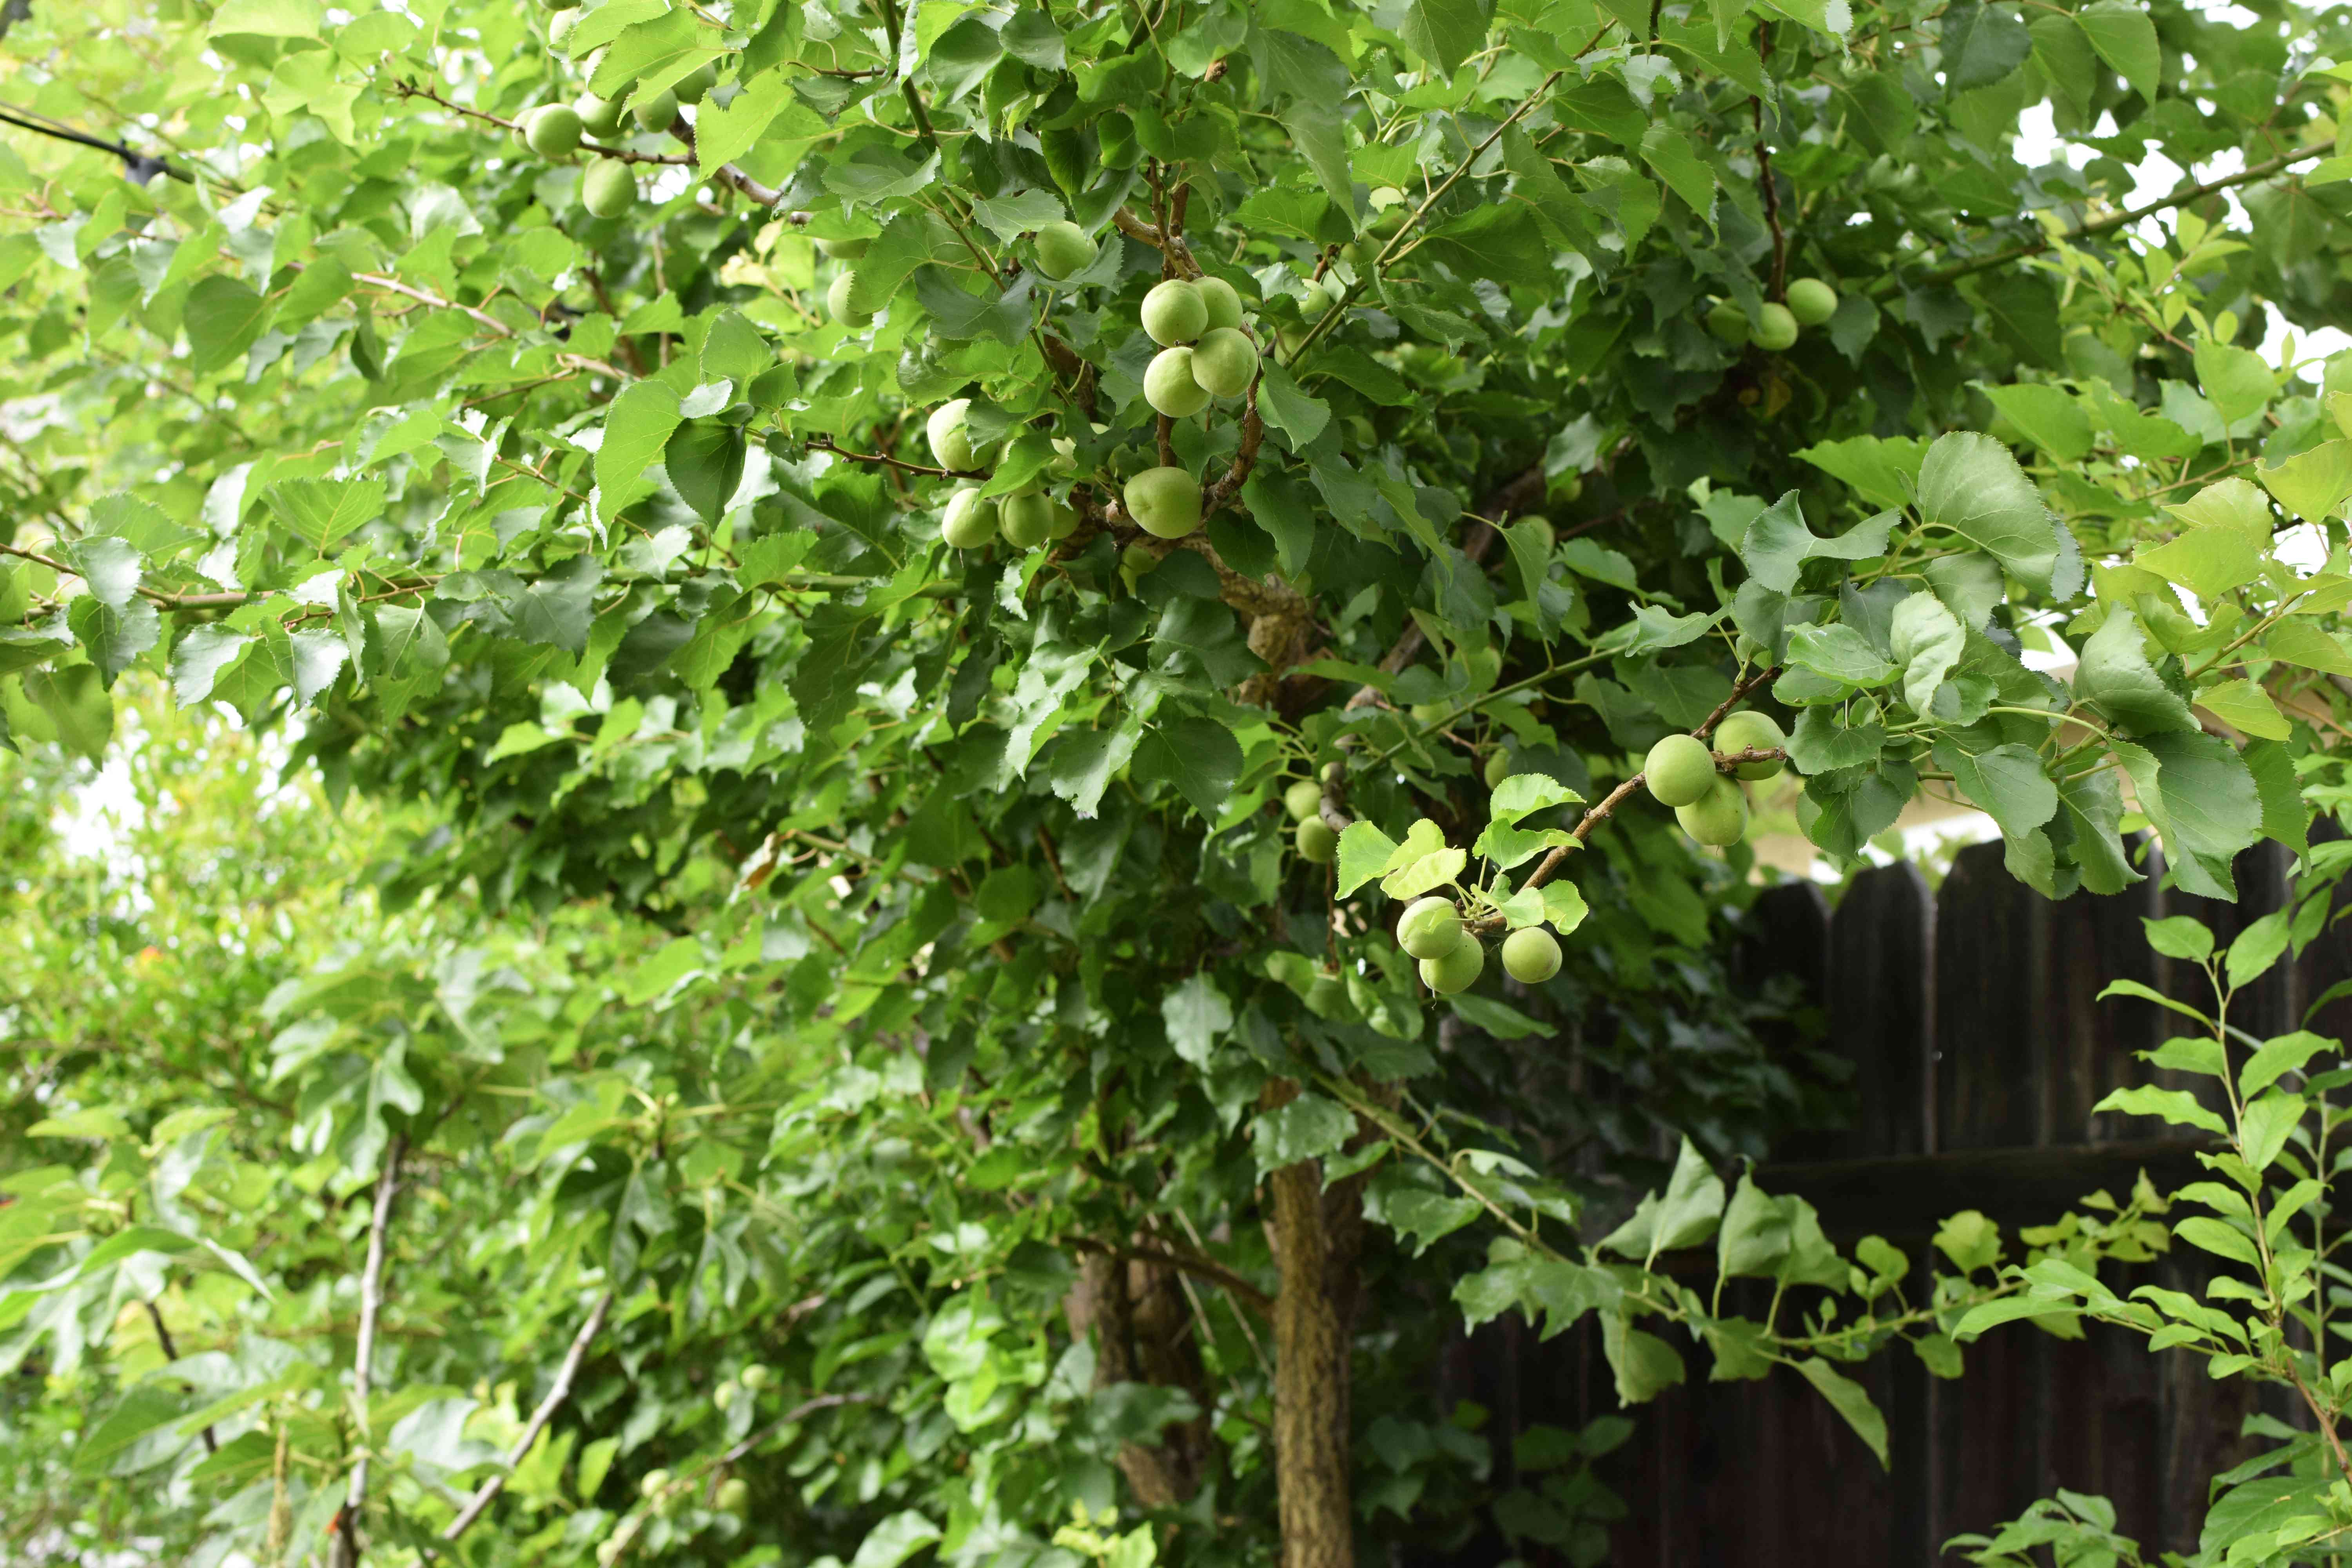 Apricot tree with bright green leaves and light green apricot fruit on branches